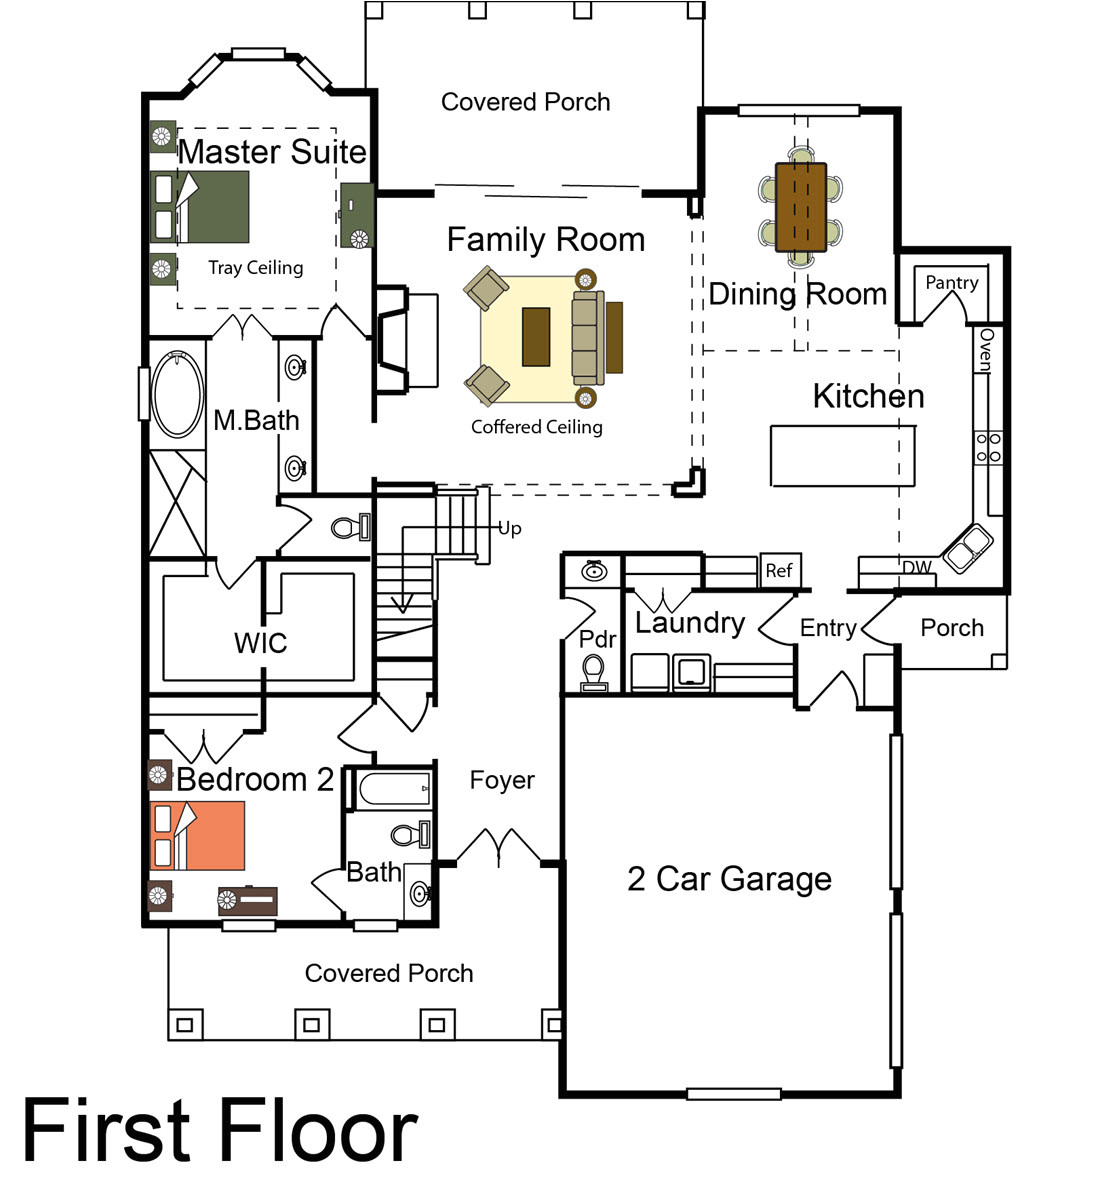 2017 ideal home greater birmingham parade of homes